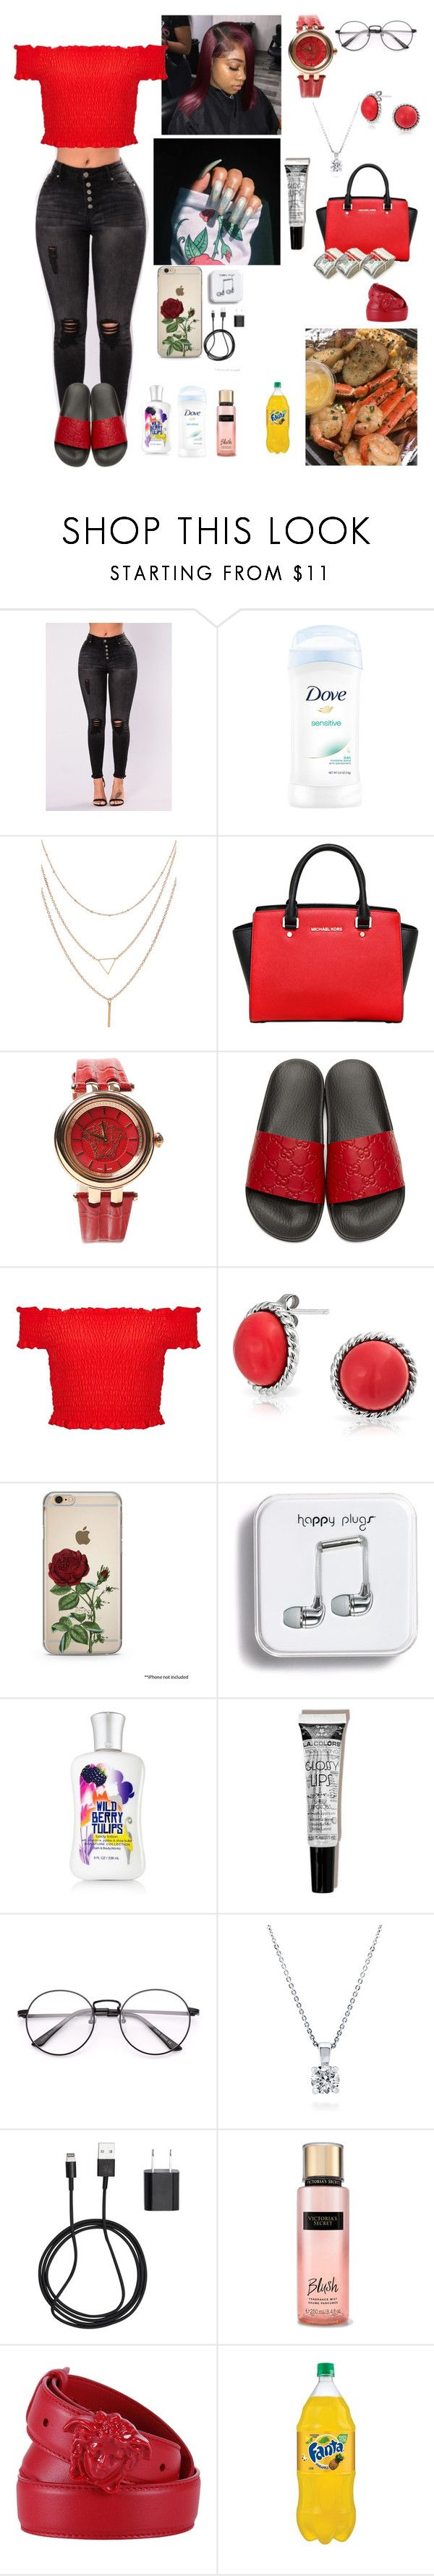 """Monday 9/11/17 going shopping "" by aleciadowdemll ❤ liked on Polyvore featuring MICHAEL Michael Kors, Versace, Gucci, Miss Selfridge, Bling Jewelry, Theory, BERRICLE, PhunkeeTree and Victoria's Secret"